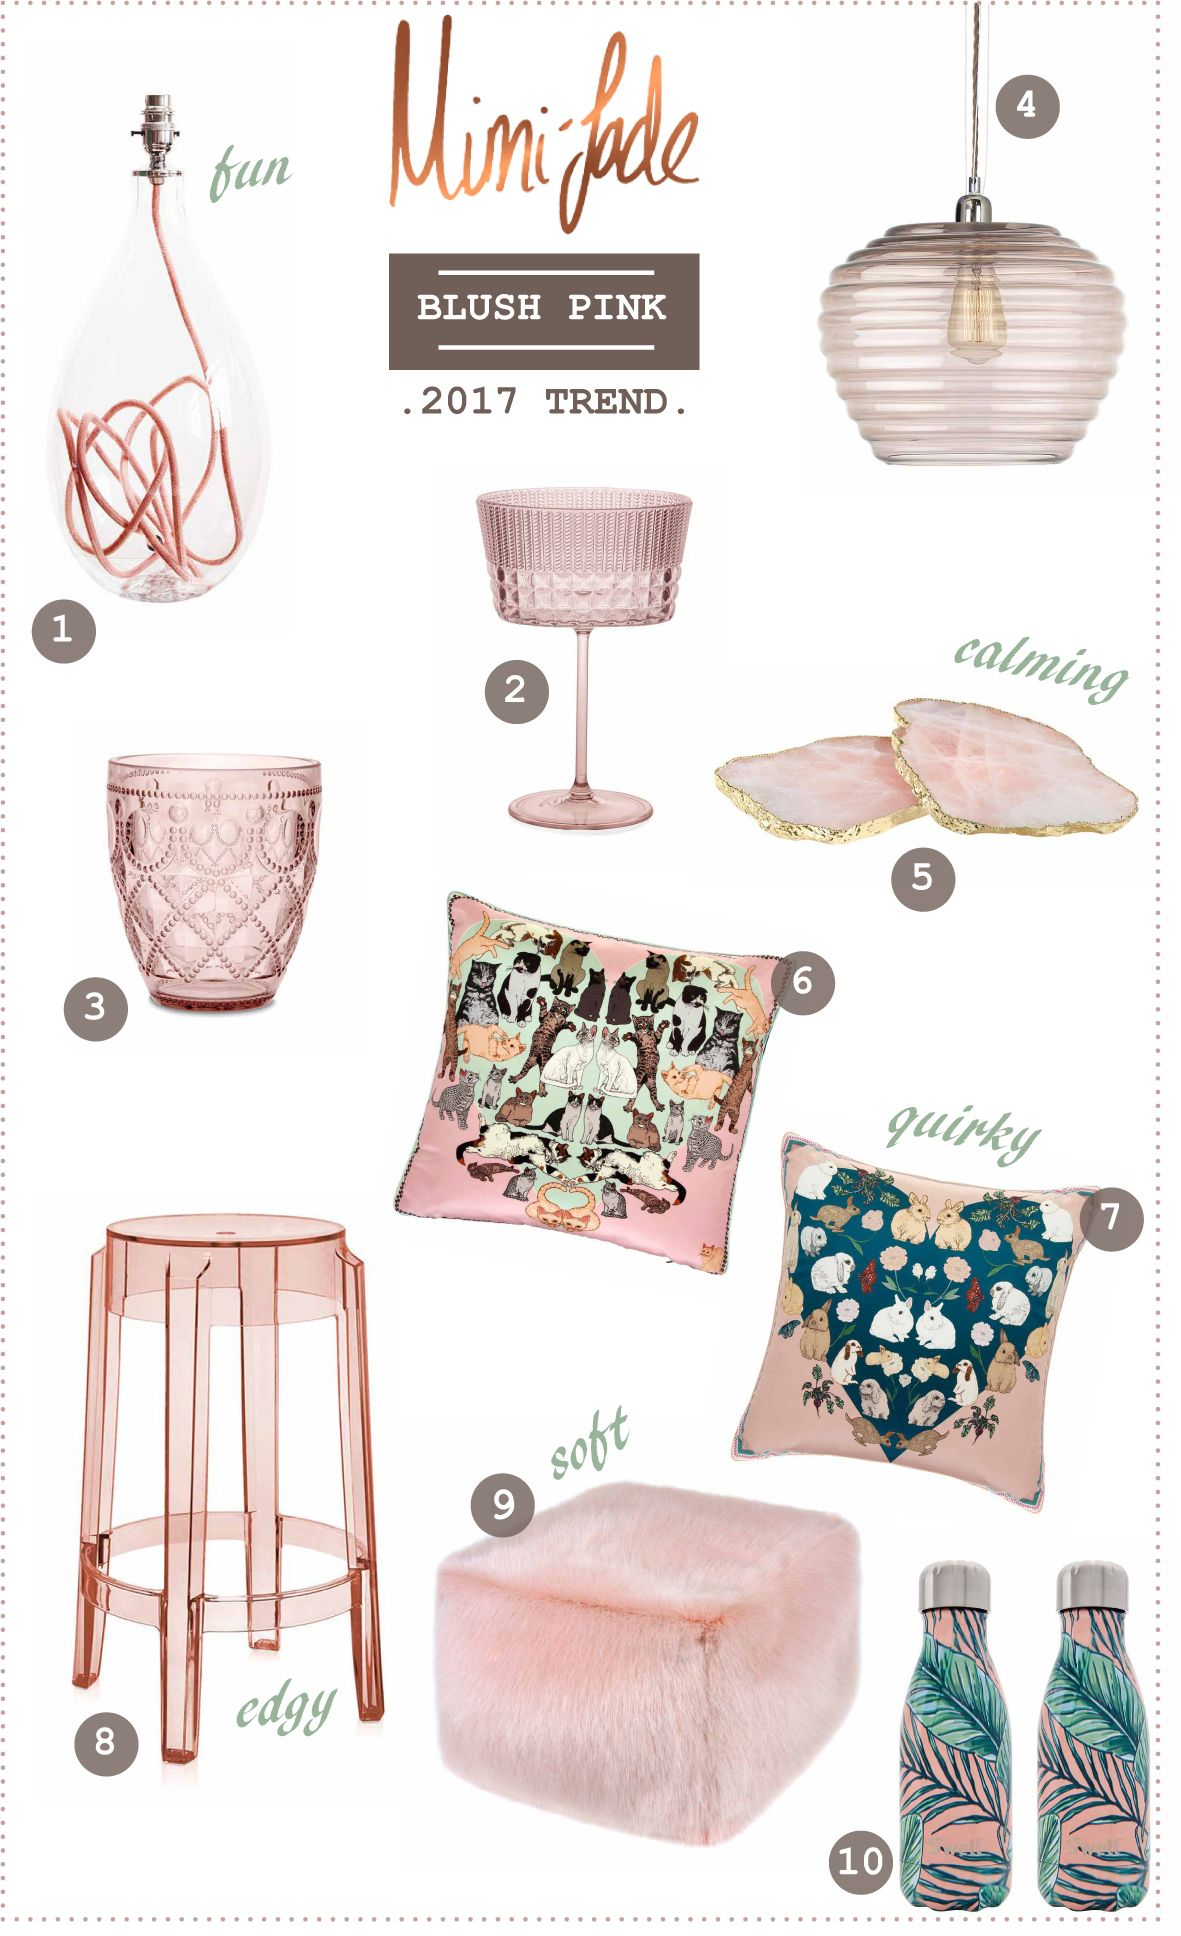 Dusky And Chalky Pink Trend For 2017 Blush Is Everywhere Home Accessories Find Out Why Everybody Falling In Love With This Pastel Shade